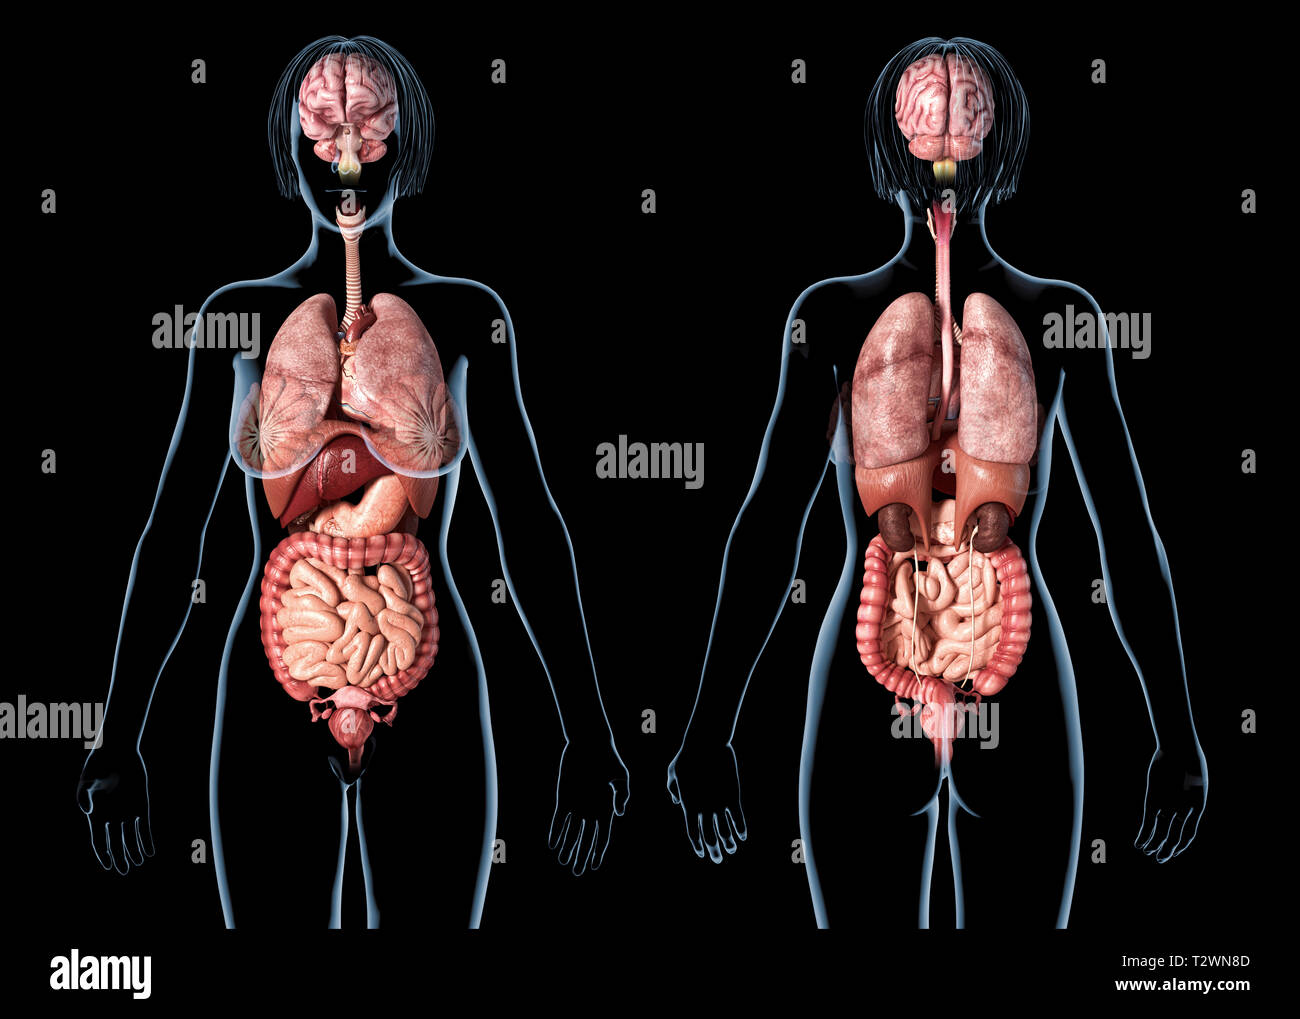 Woman anatomy internal organs, rear and front views. On black background. - Stock Image